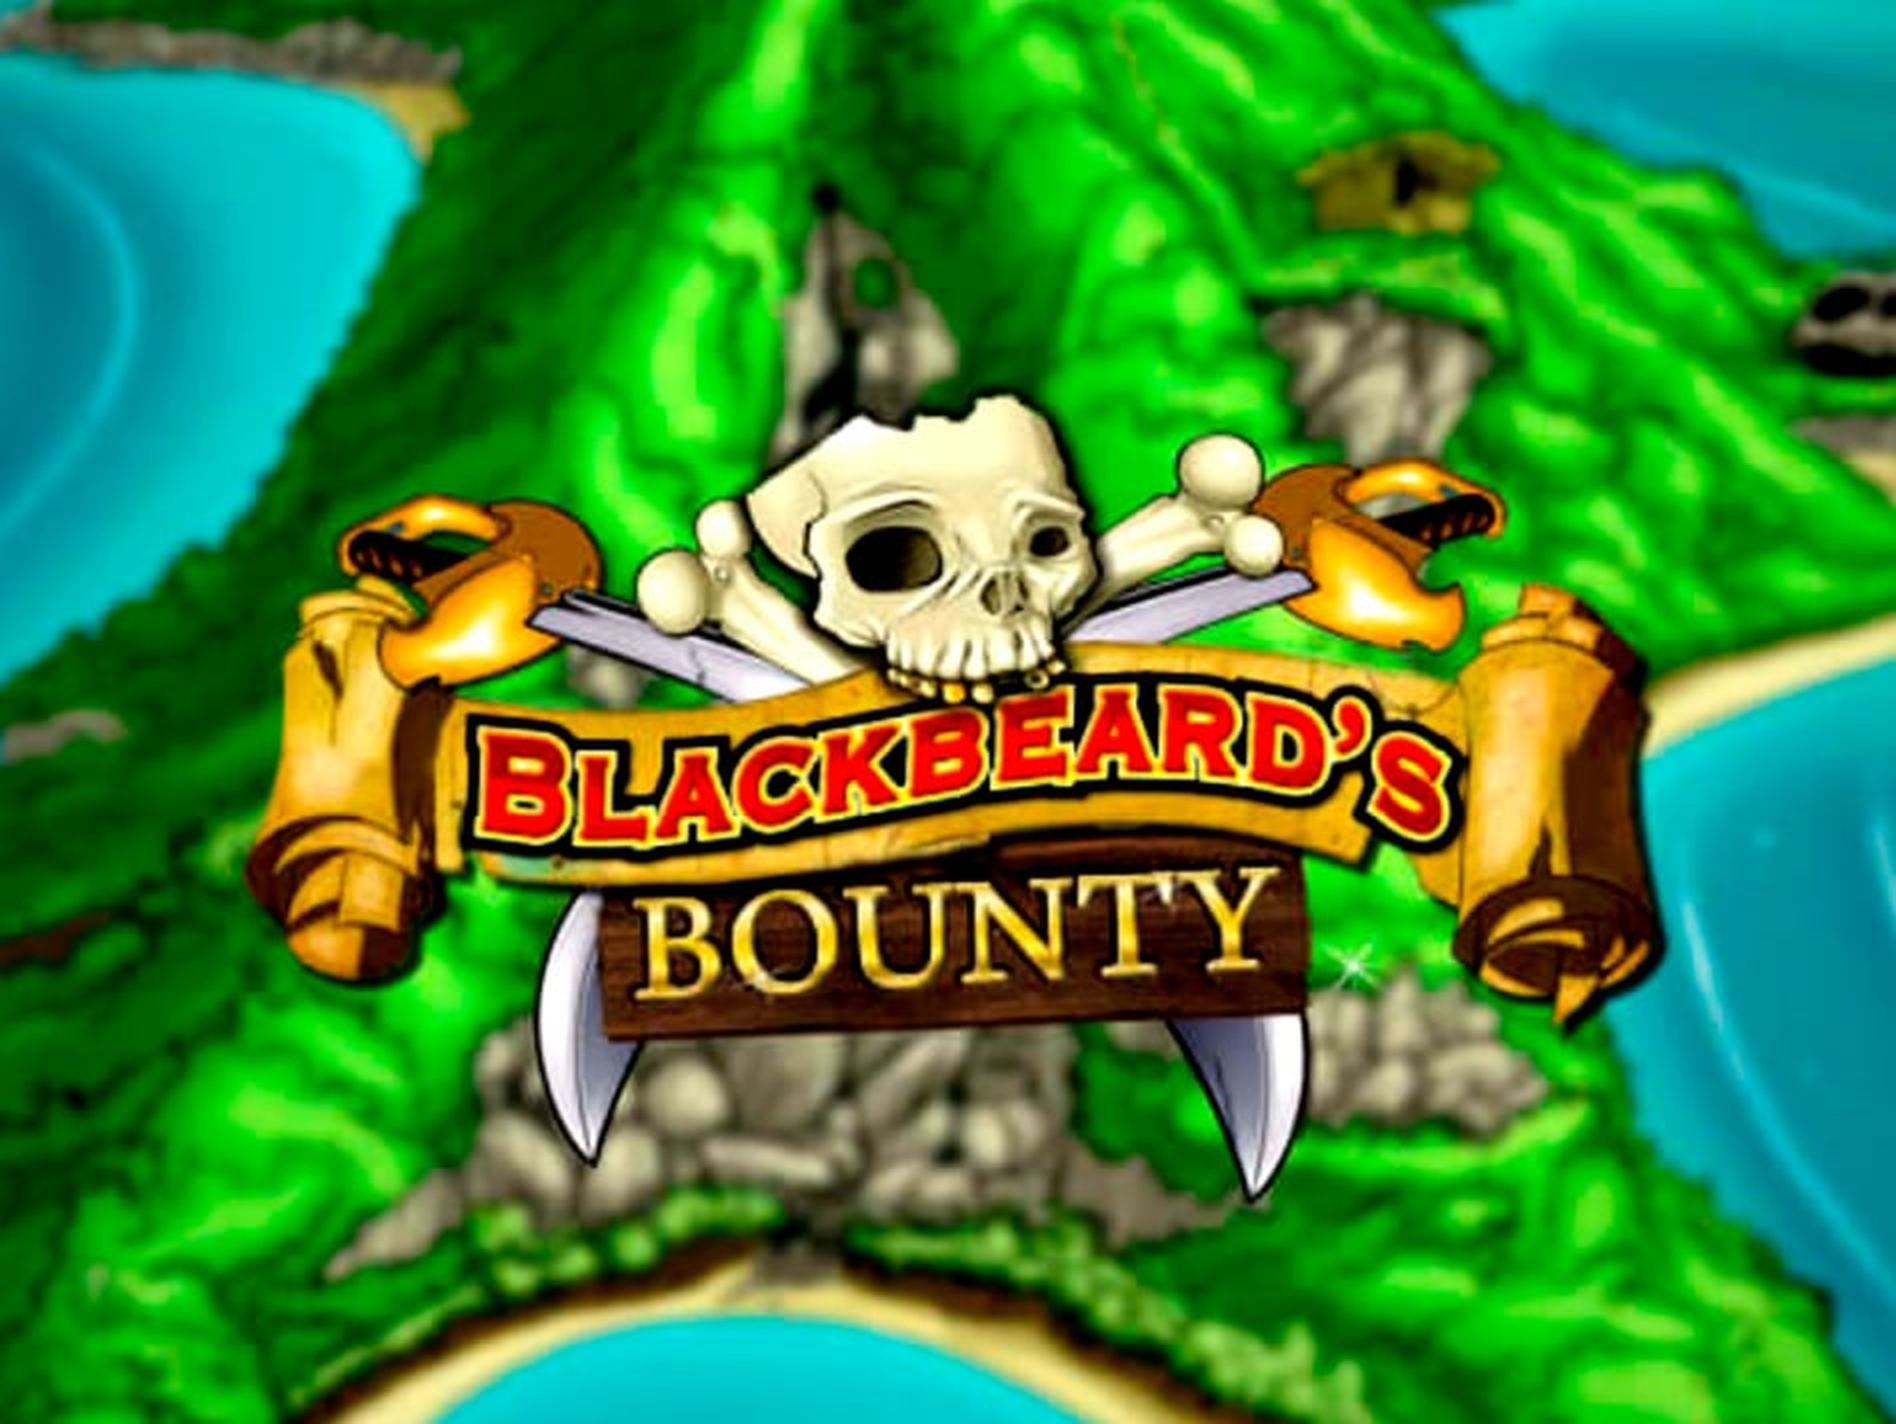 The Blackbeard's Bounty Online Slot Demo Game by Habanero